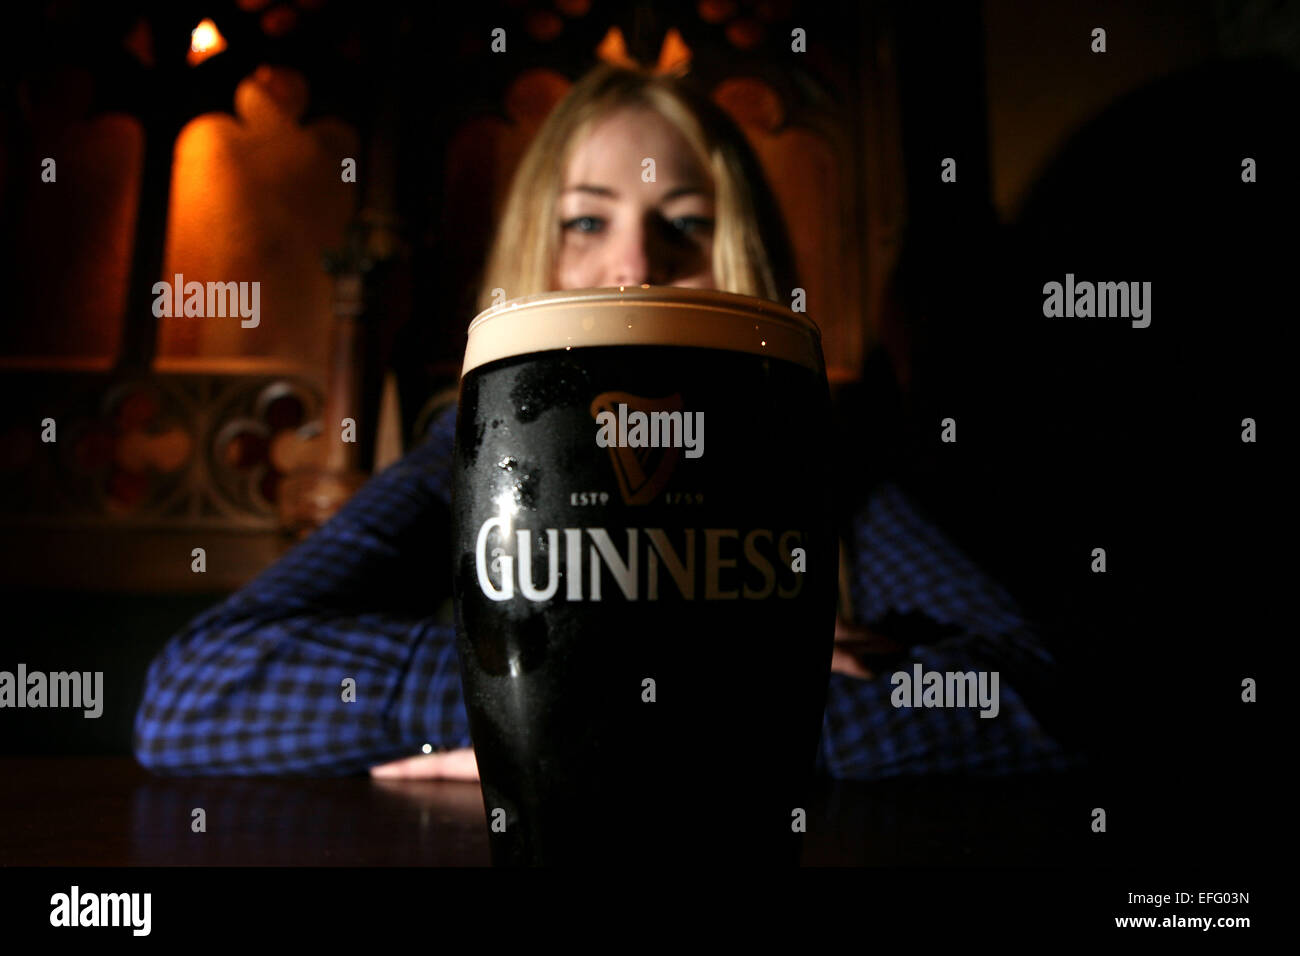 A woman with a pint of Guinness beer - Stock Image